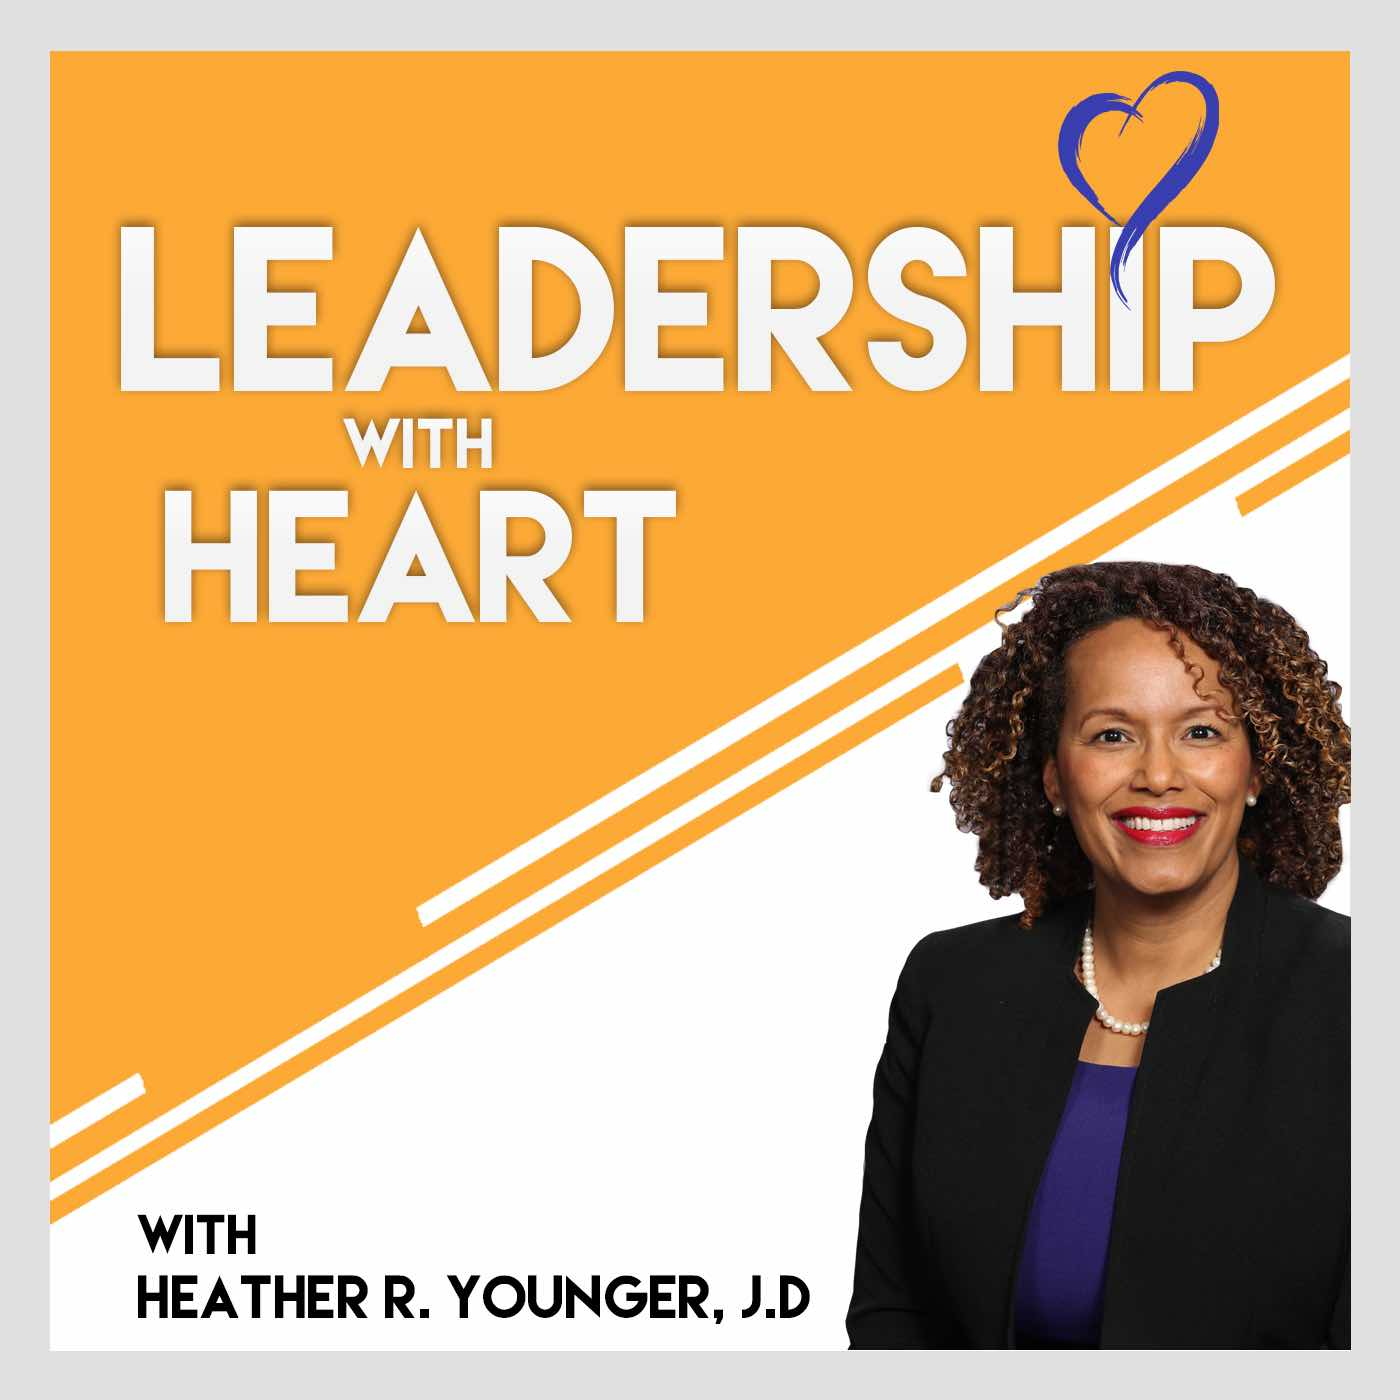 137: Leaders with Heart Lead with Integrity